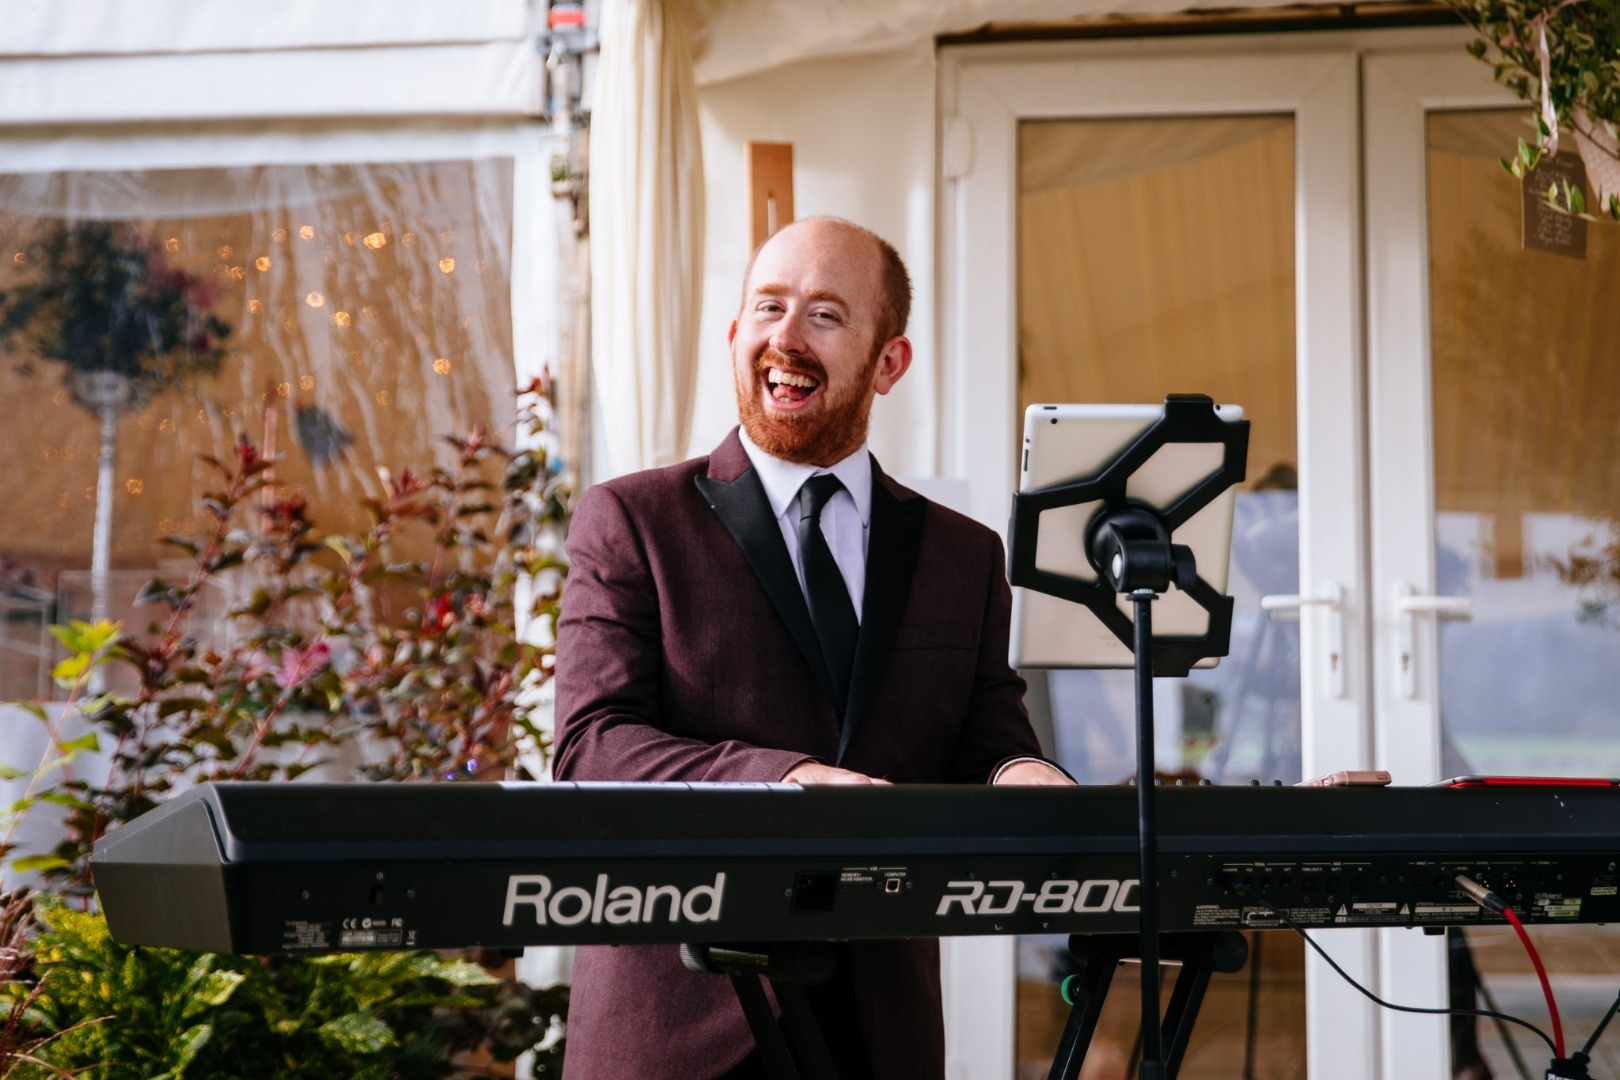 Live wedding pianist for wedding drinks reception live music